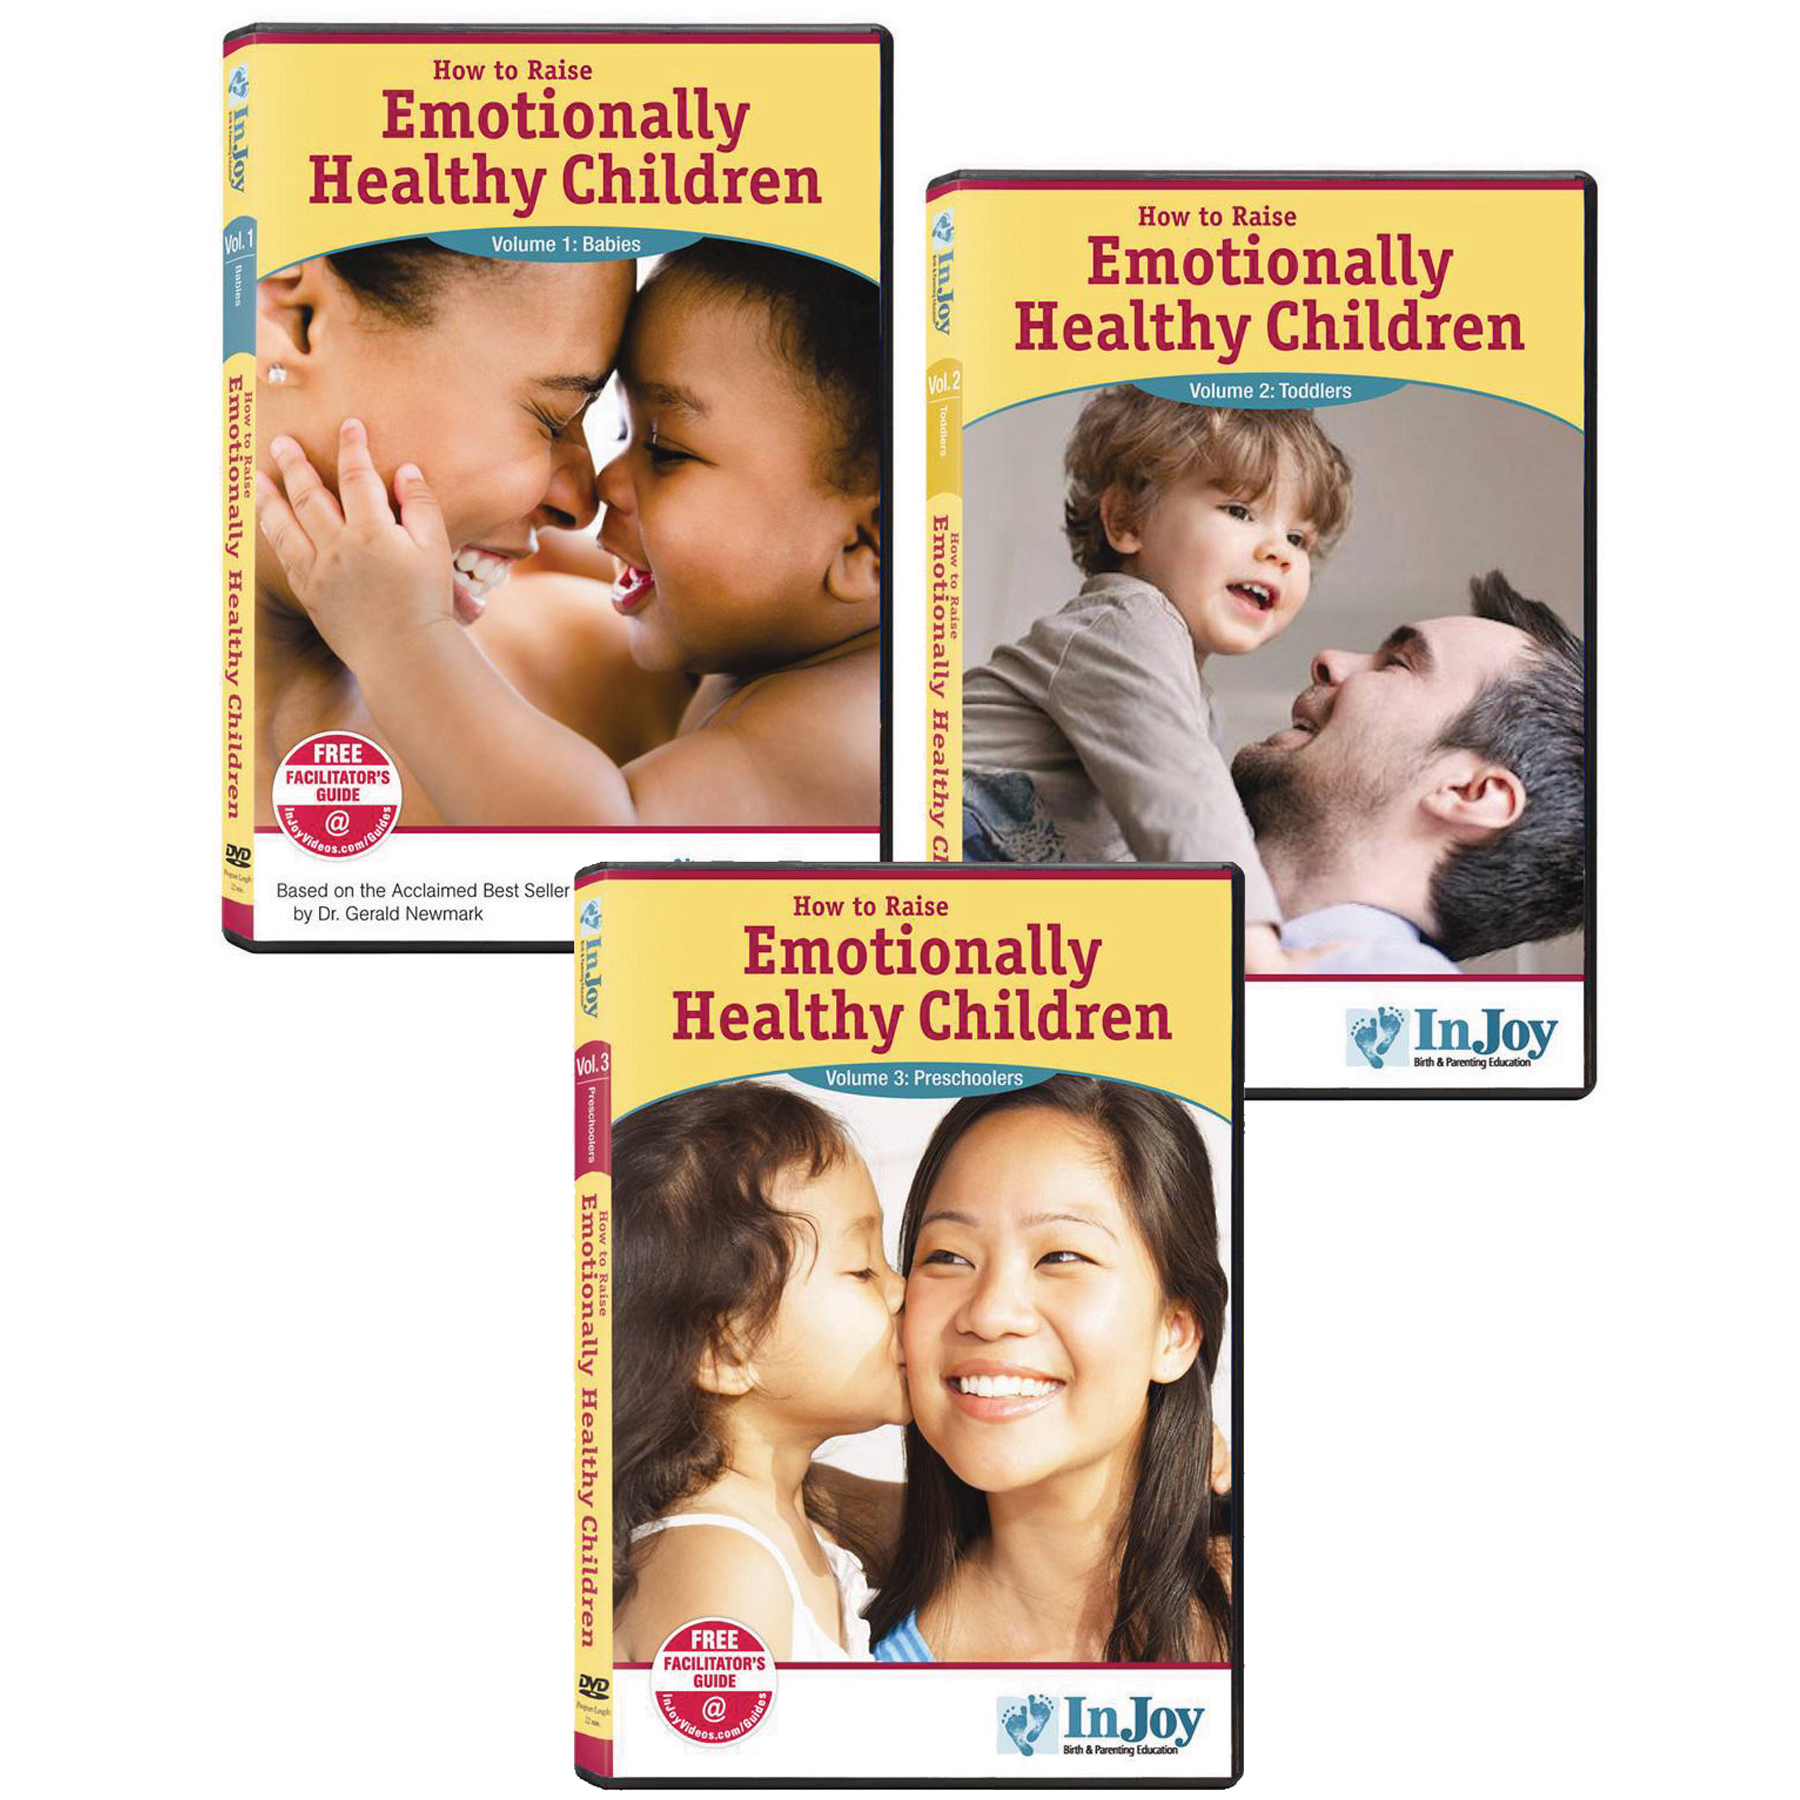 How to Raise Emotionally Healthy Children 3 DVD Set, babies toddlers preschoolers covers, Childbirth Graphics, 48776